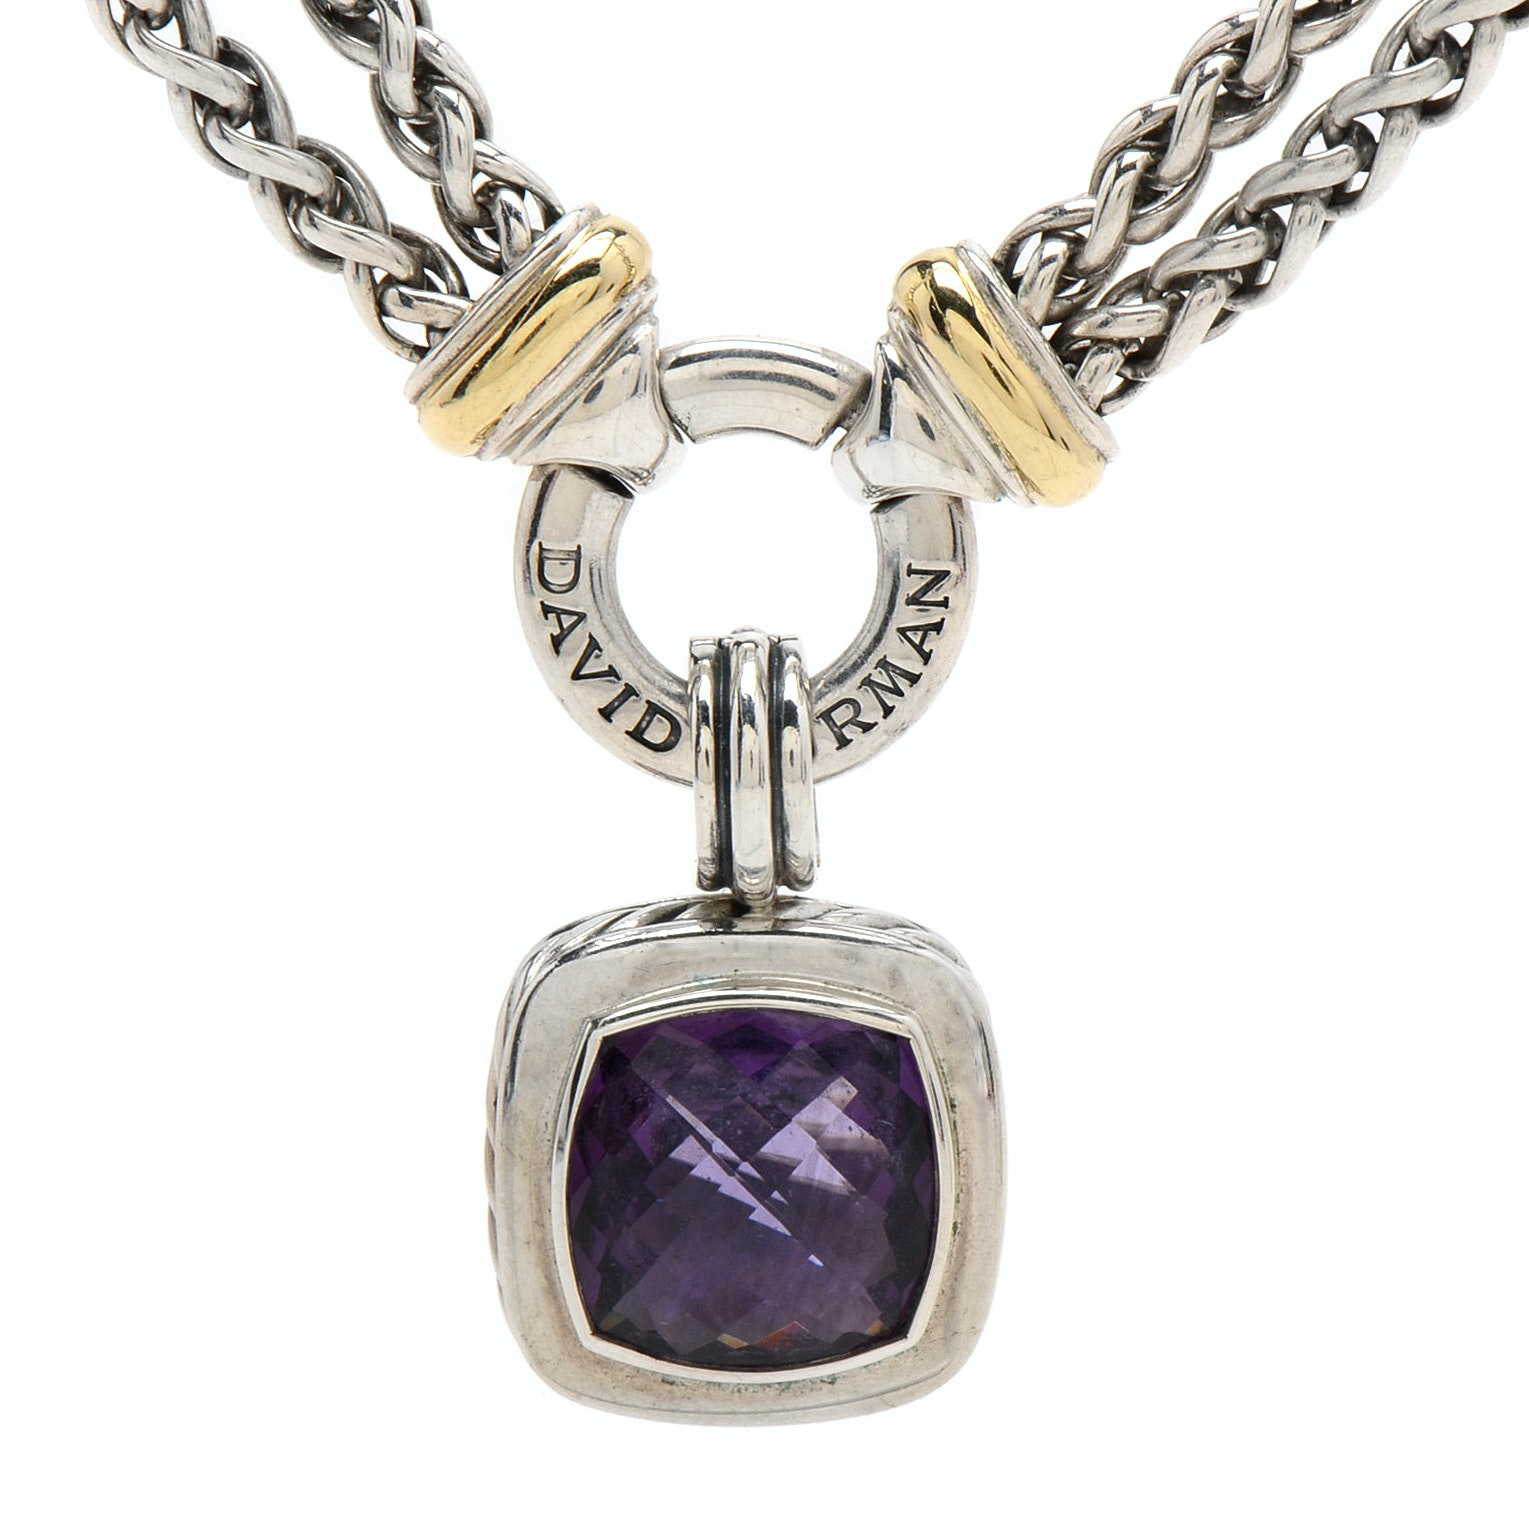 David Yurman Sterling Silver and Amethyst Necklace